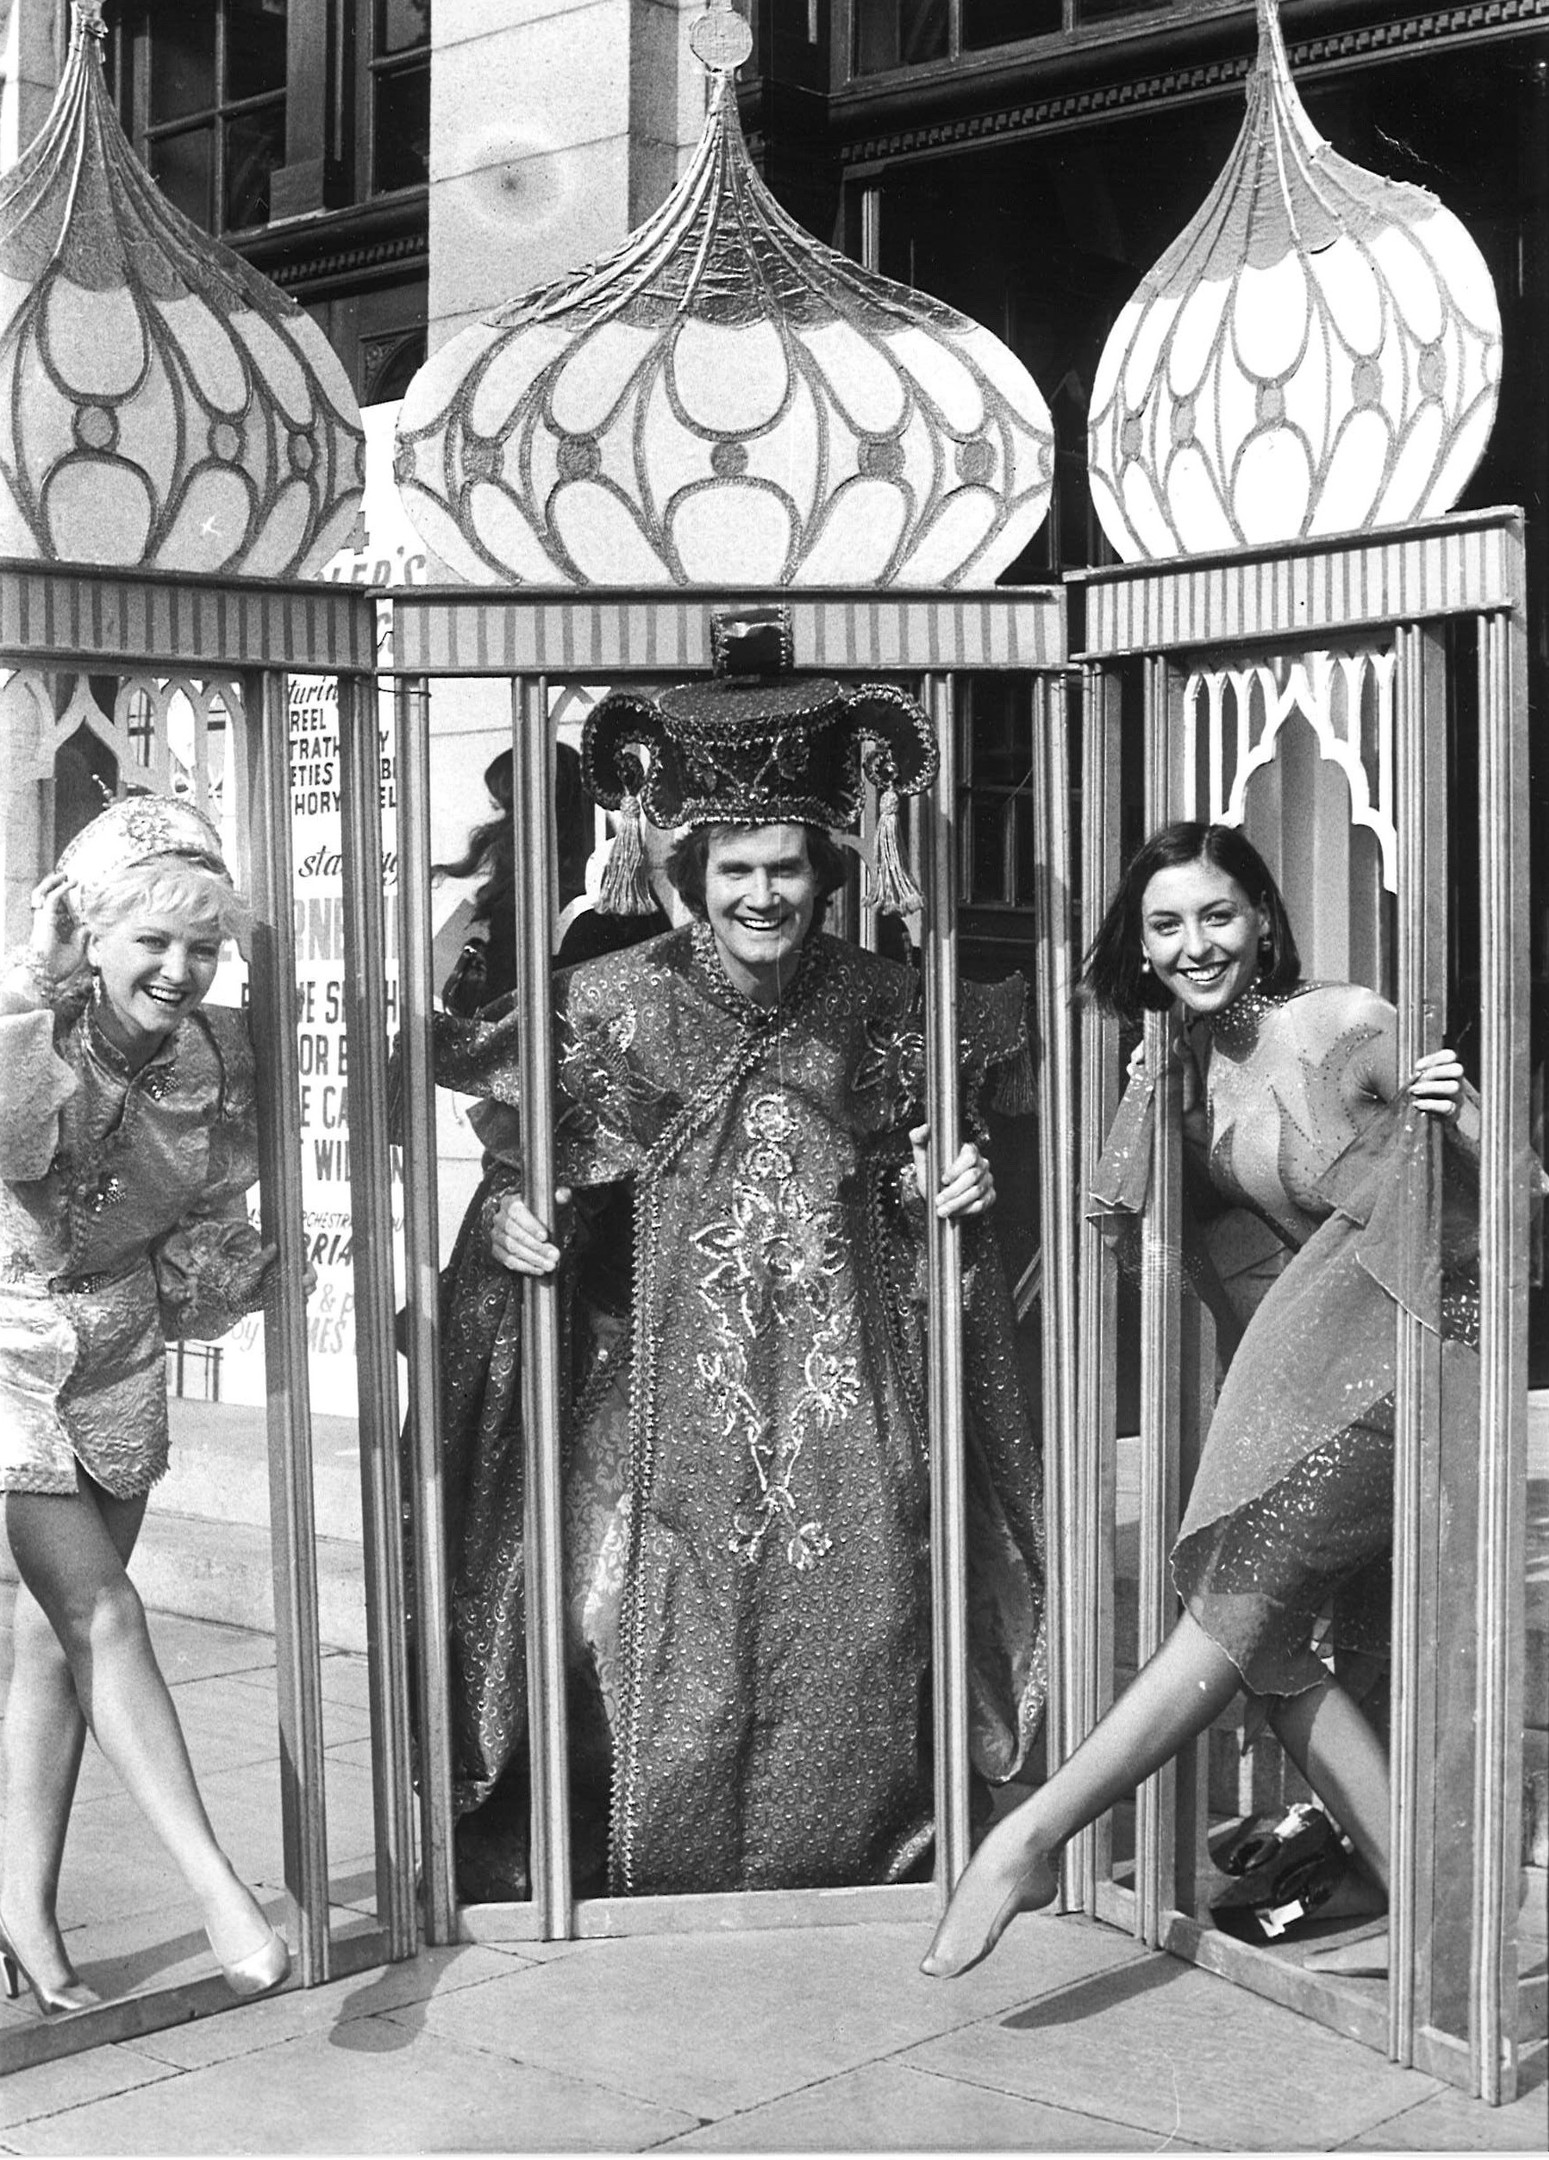 Edwina Lawrie (left), who is the sister of Scots singer Lulu, played Aladdin at the theatre in 1984